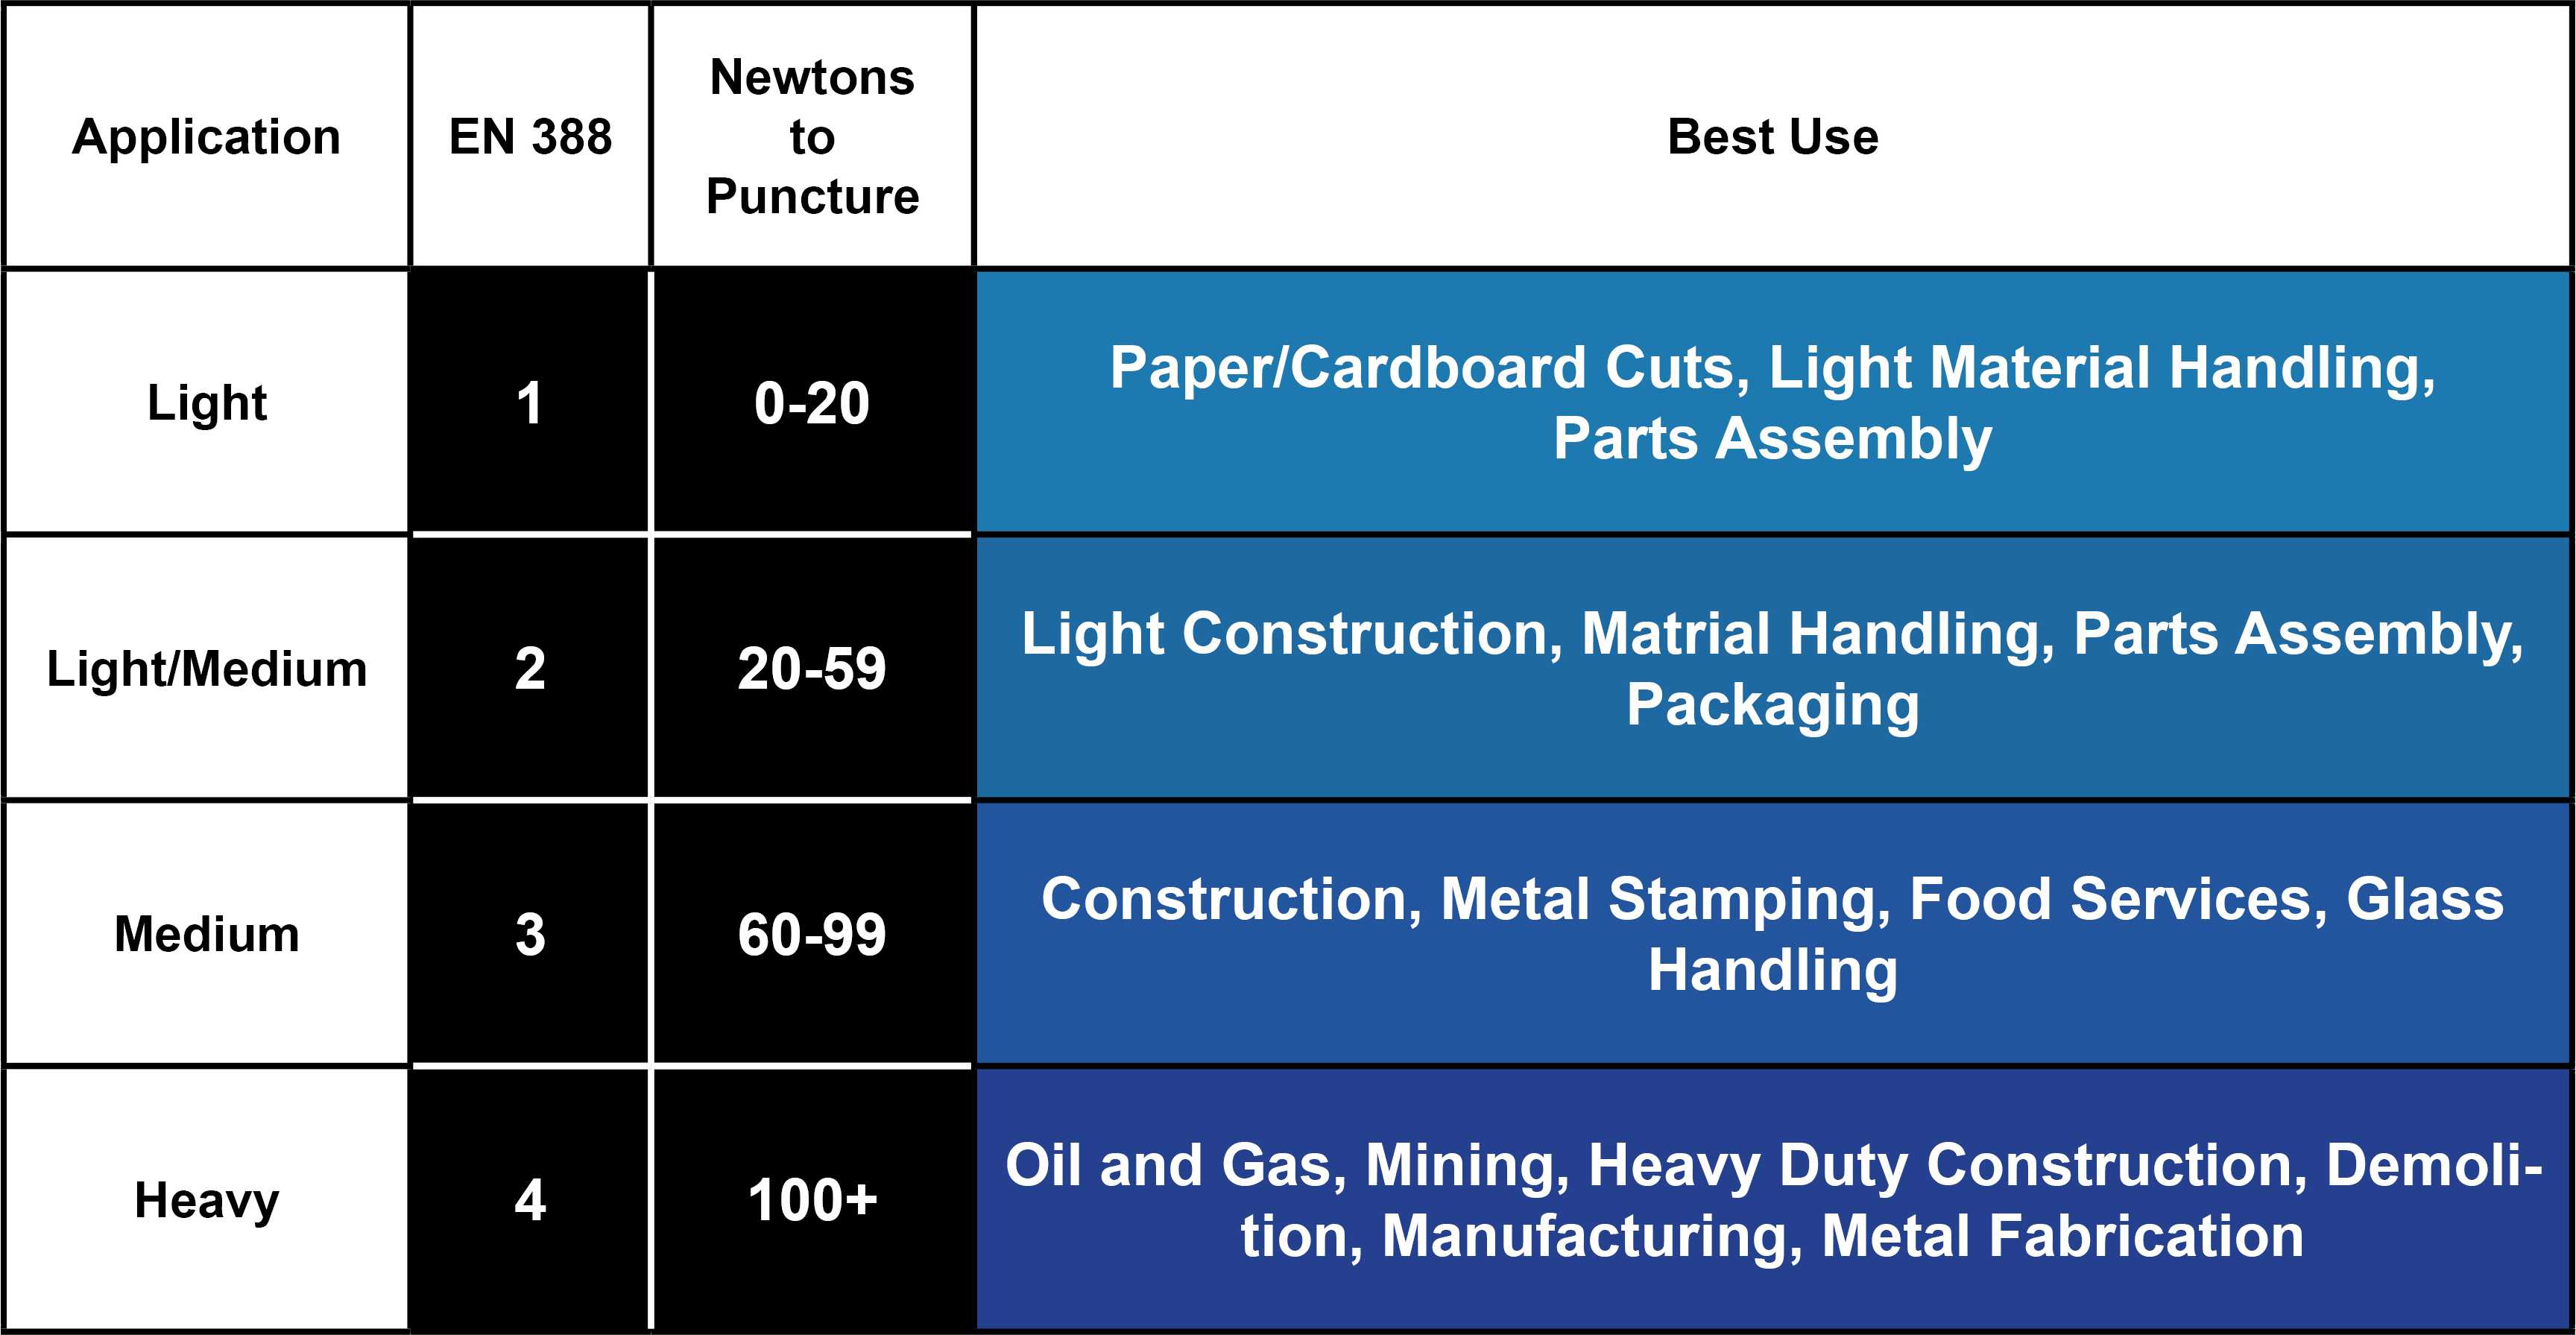 this image provides a breakdown of how many newtons of force are needed to puncture a glove